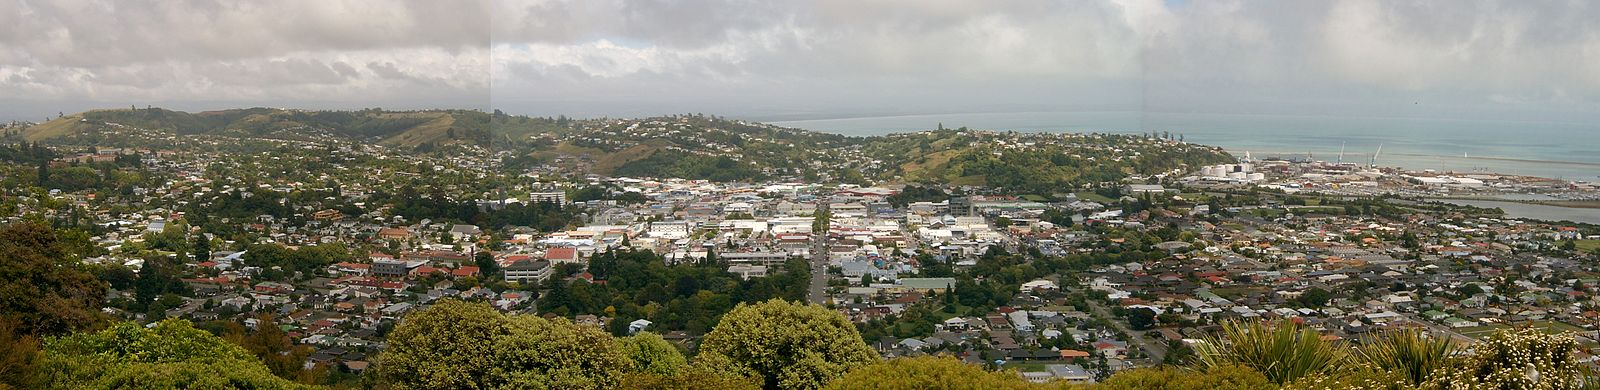 A panorama of Nelson City from the Centre of New Zealand monument Nelsoncity.jpg